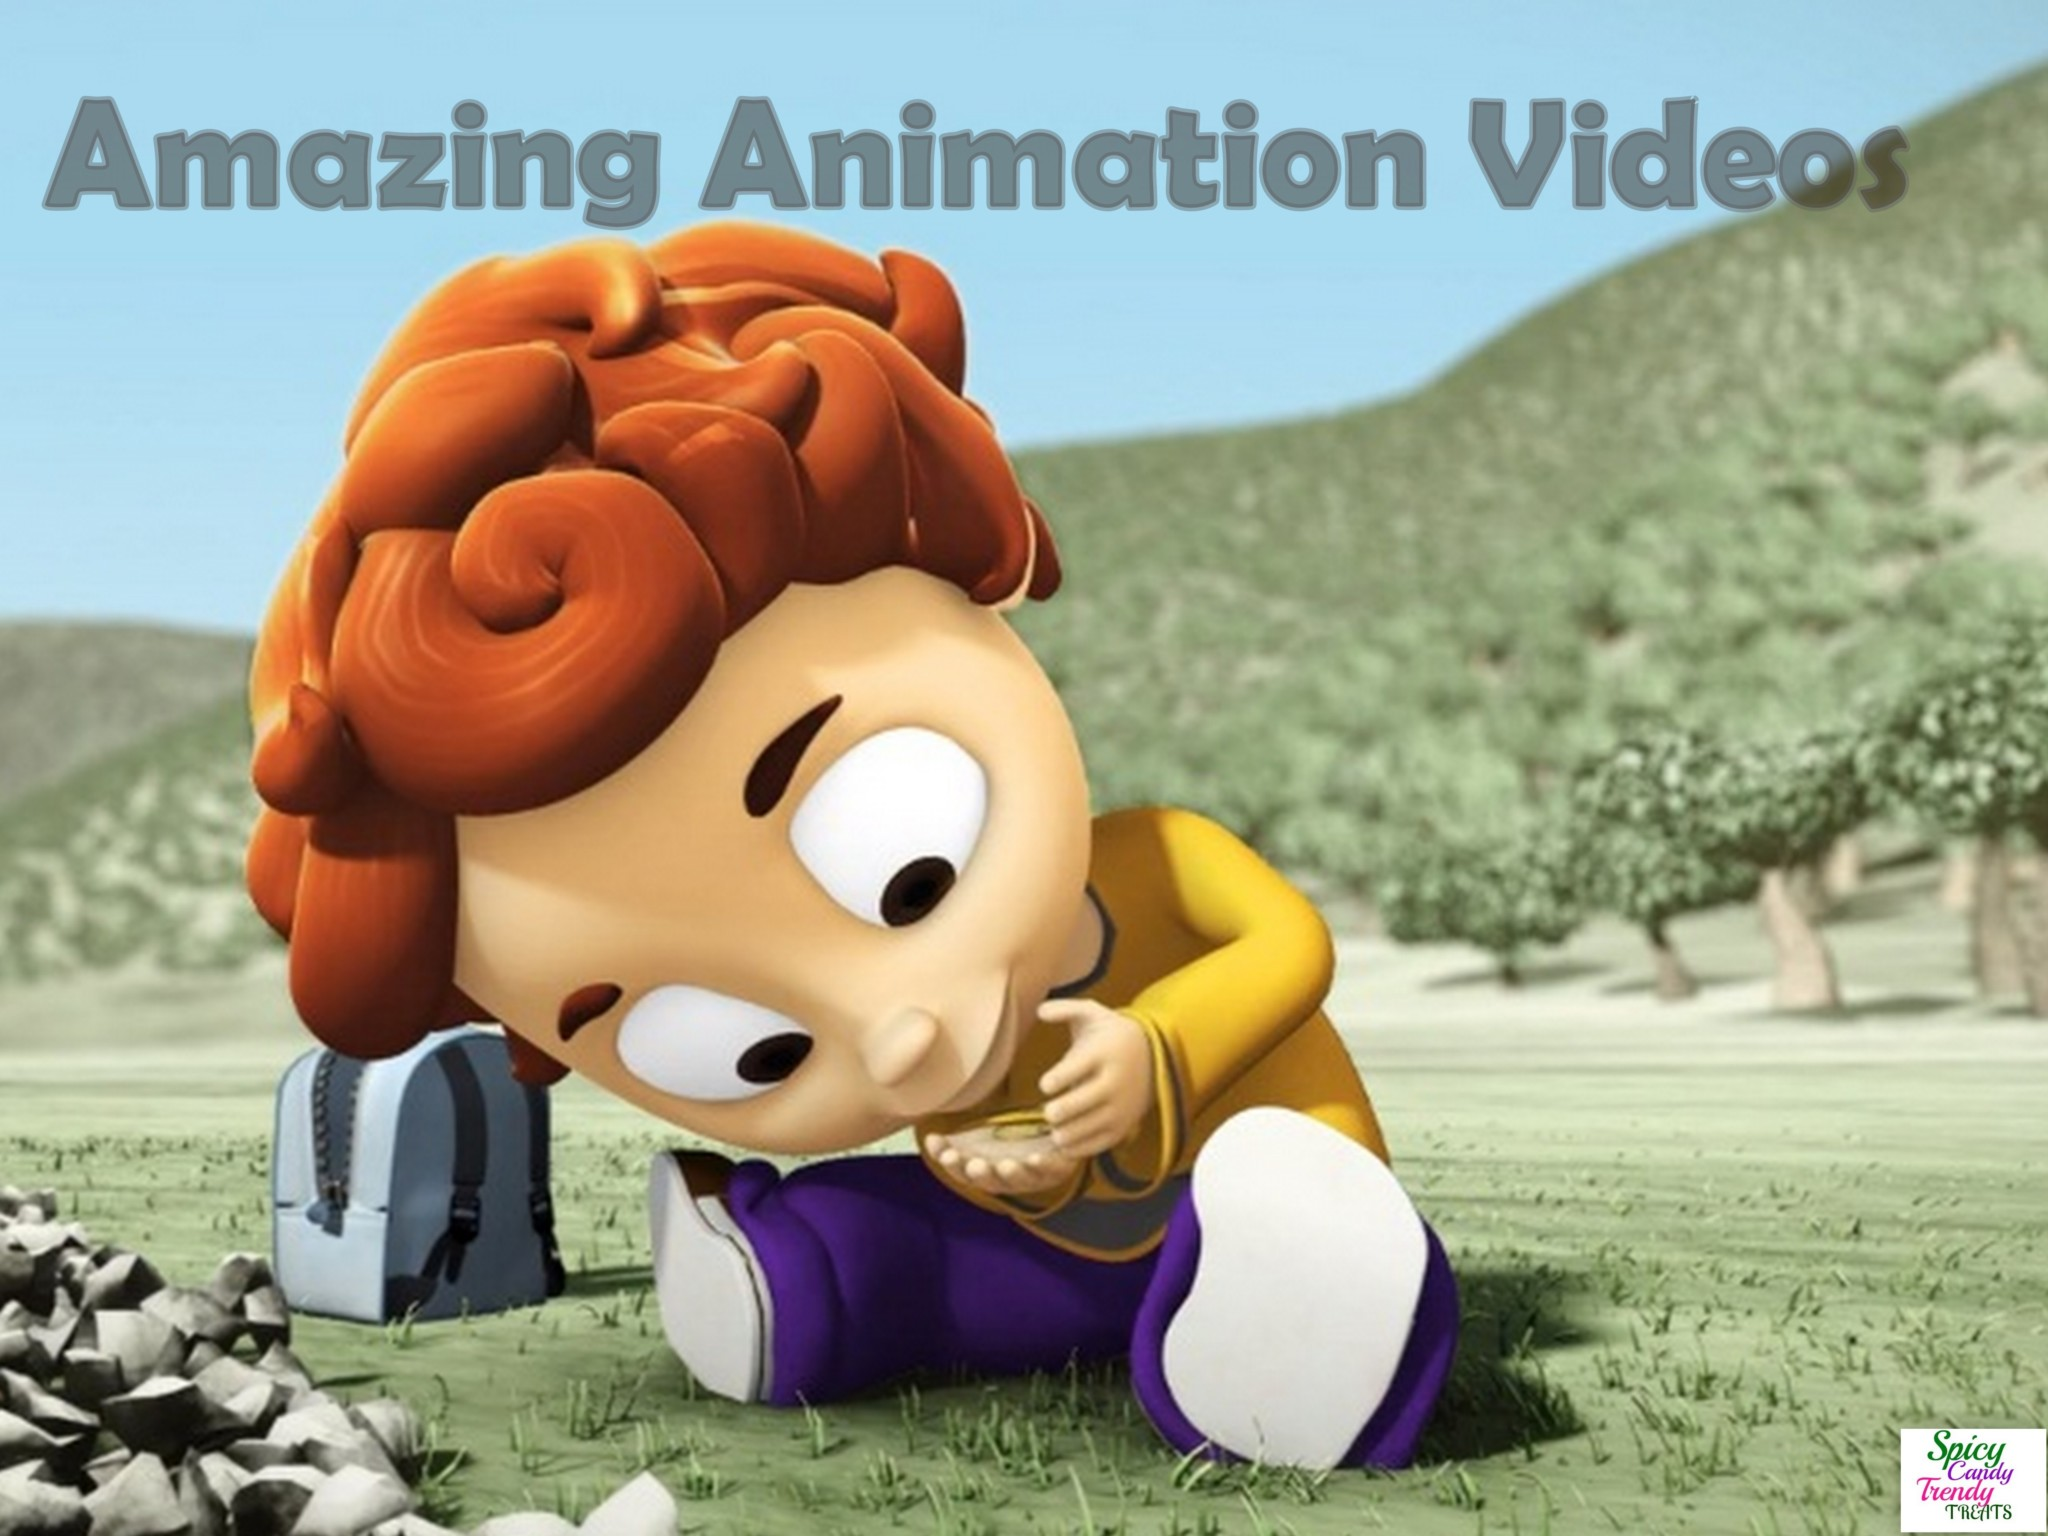 Amazing Animation Videos